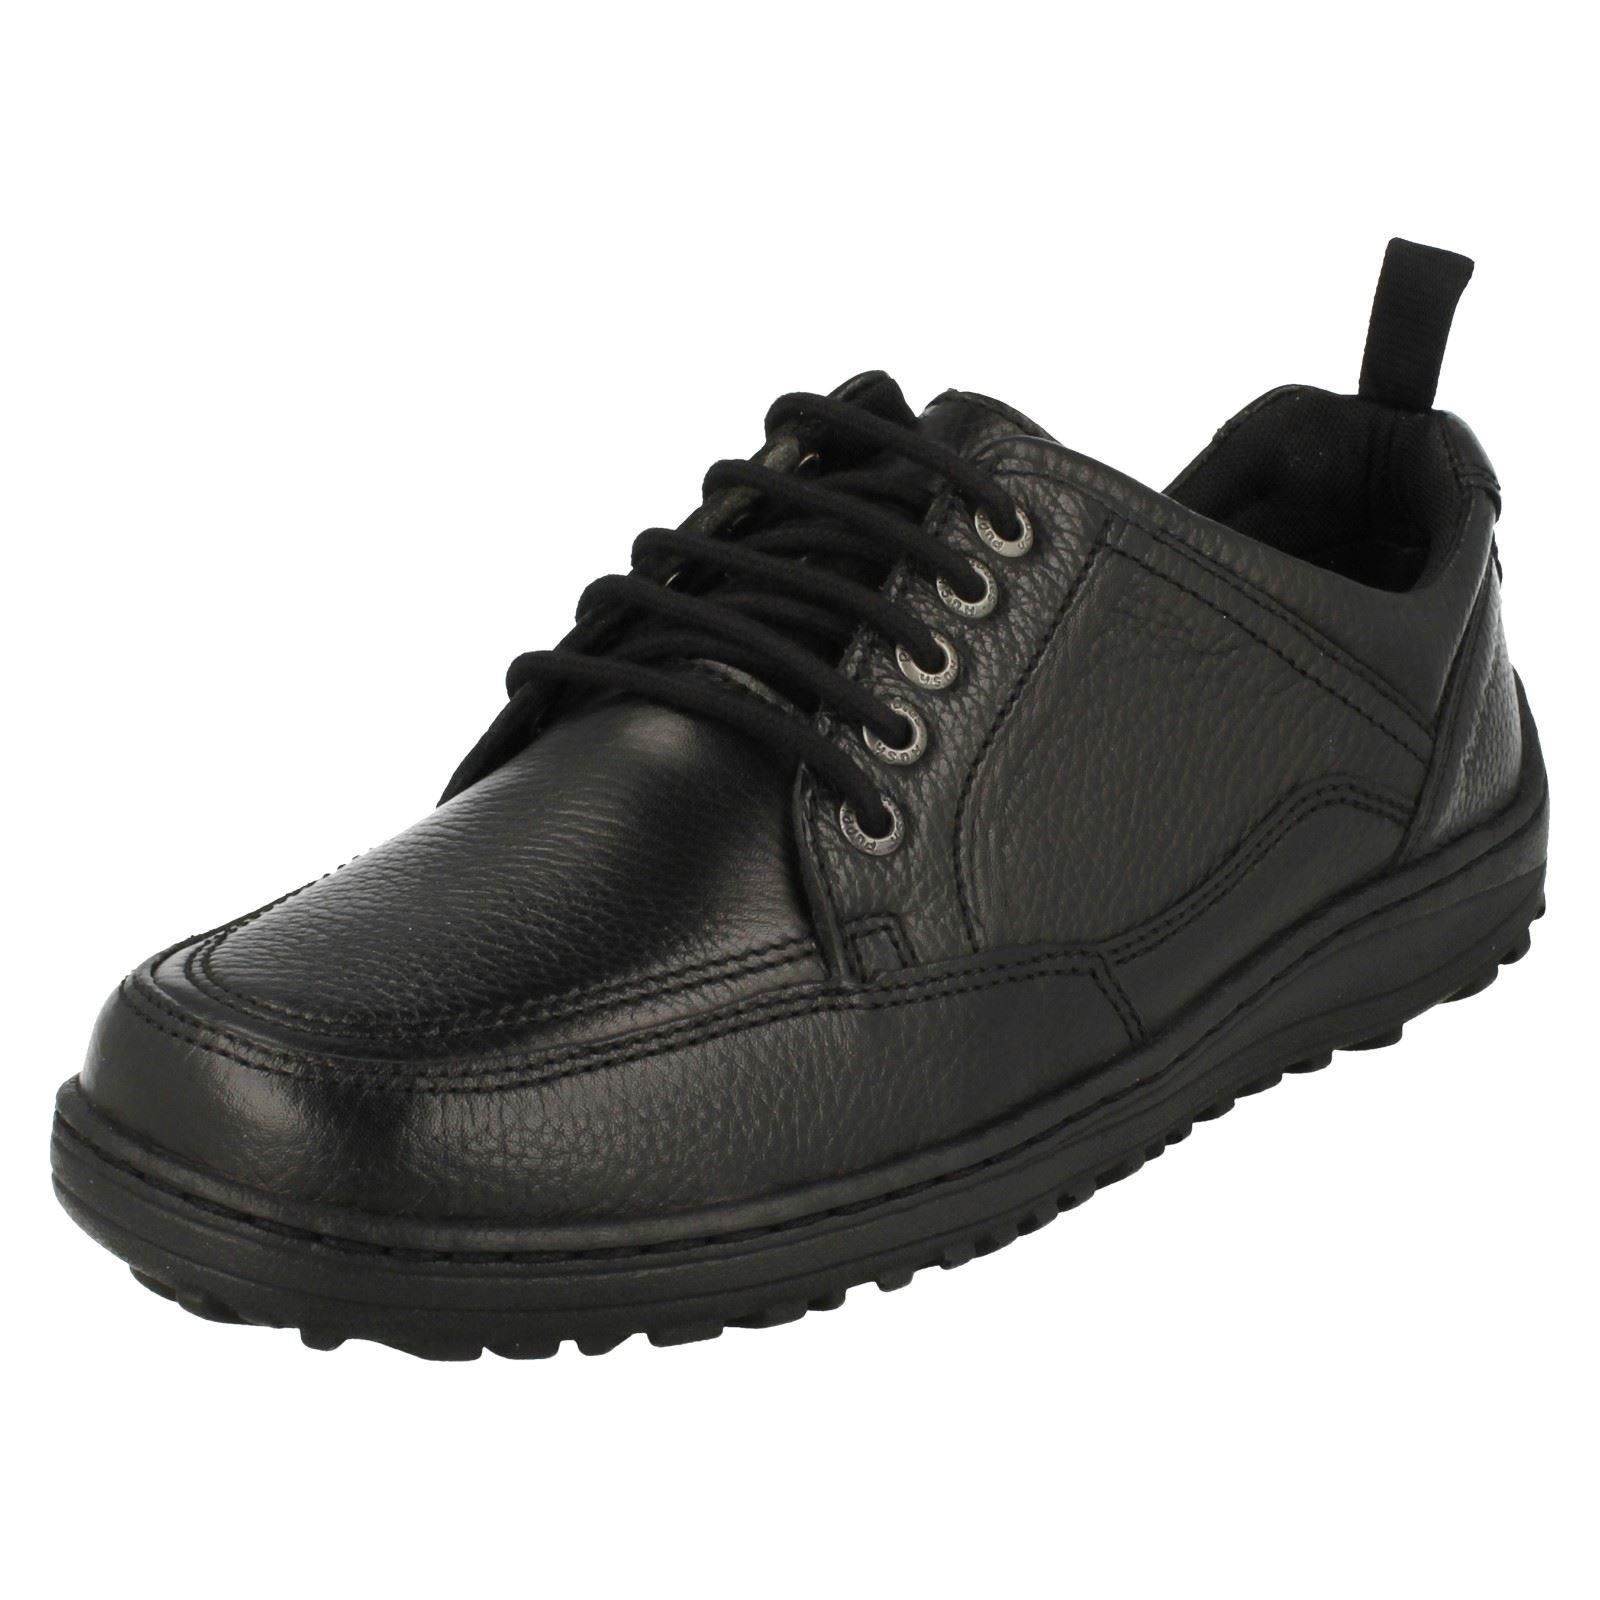 Da Uomo Hush Puppies Smart Lacci Scarpe Oxford Belfast Oxford Scarpe 0de04a